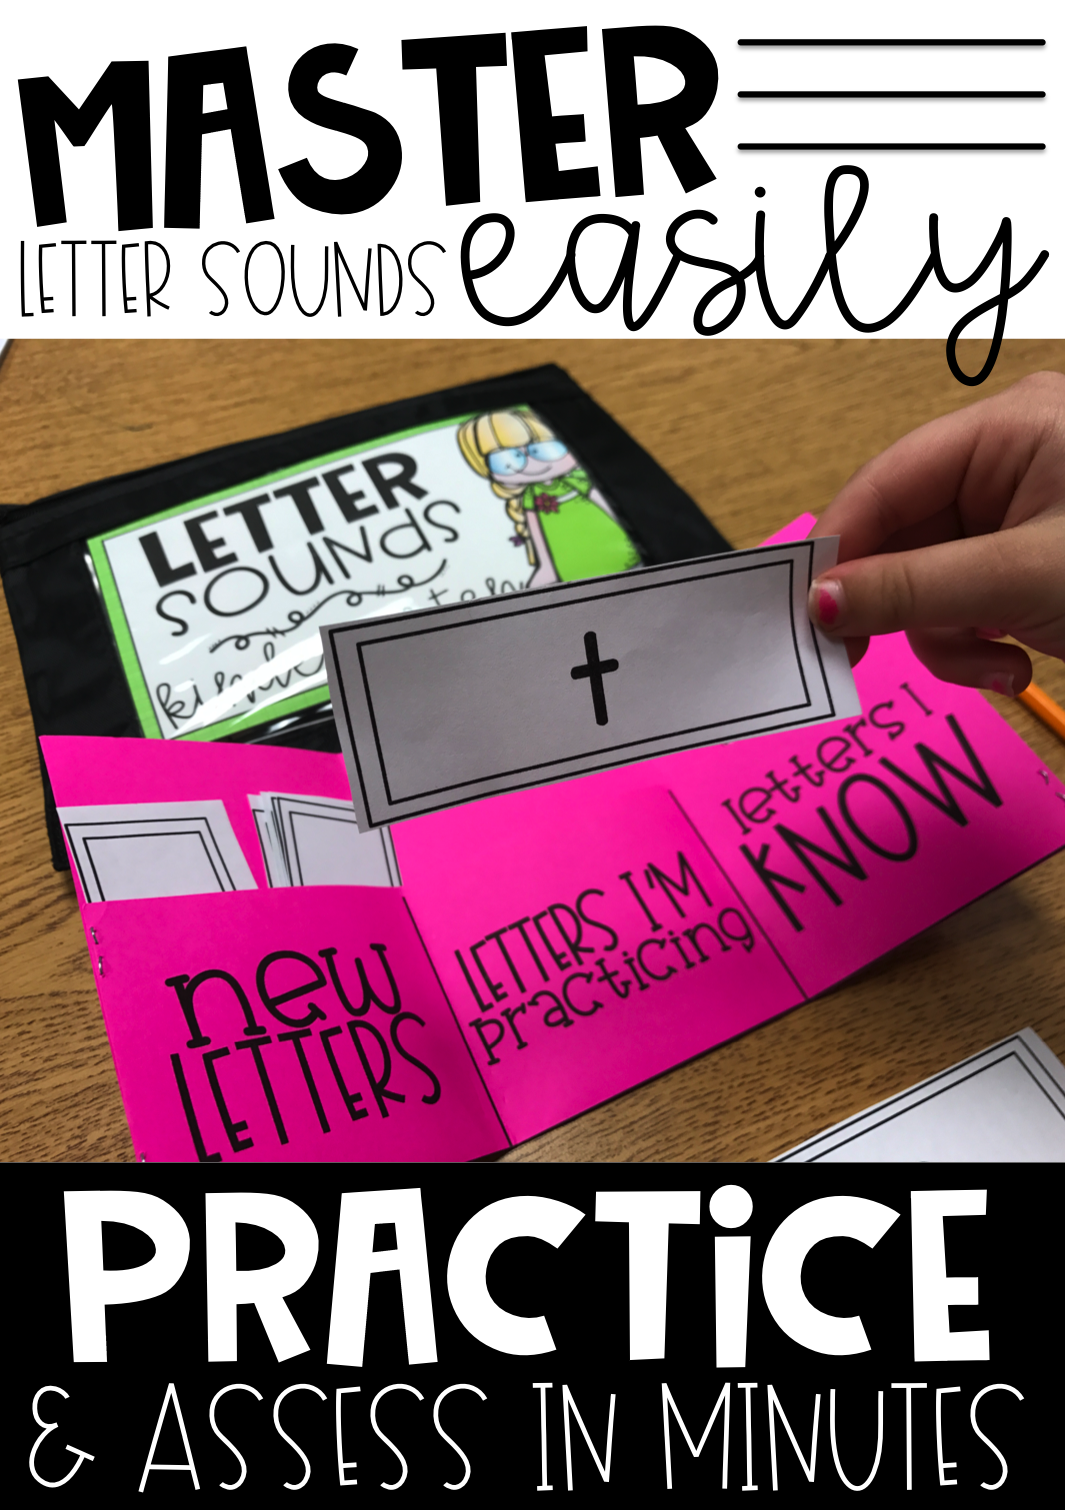 Letter Sounds Intervention for Practice and Assessment